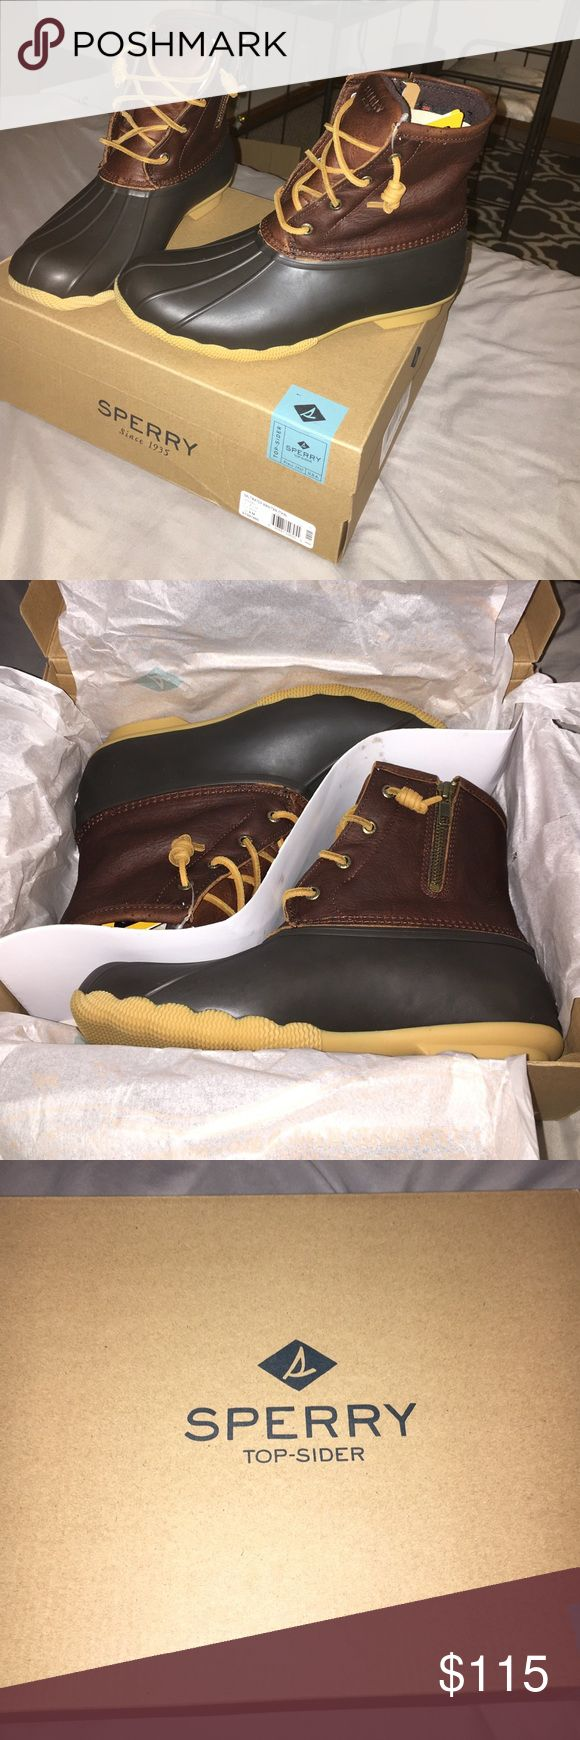 Saltwater Brown/Tan Sperry Duck boots Brand new so in great condition. Never worn. Just accidentally got to of the same pair for Christmas. Feel free to make any offers 😊 Cheaper in Ⓜ️ Sperry Top-Sider Shoes Winter & Rain Boots